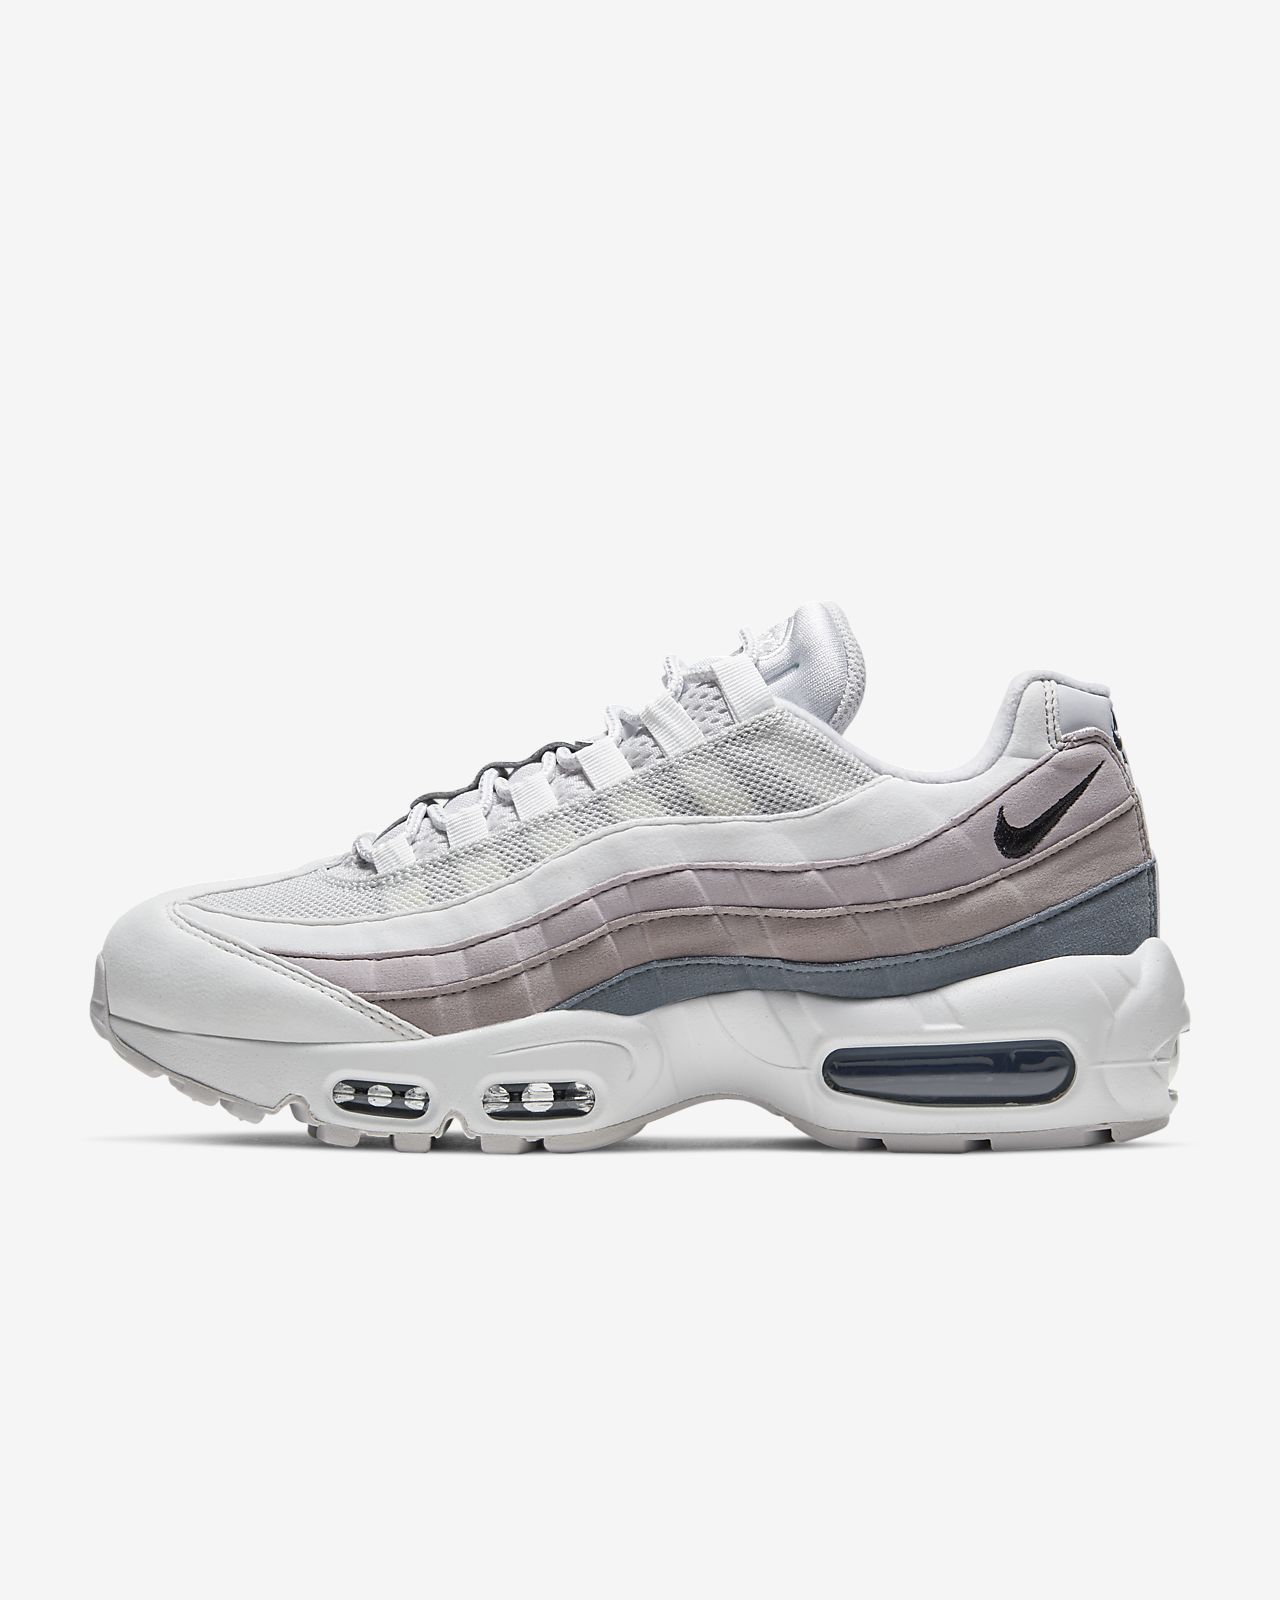 new concept a7bd9 bff44 Nike Air Max 95 Women s Shoe. Nike.com CA